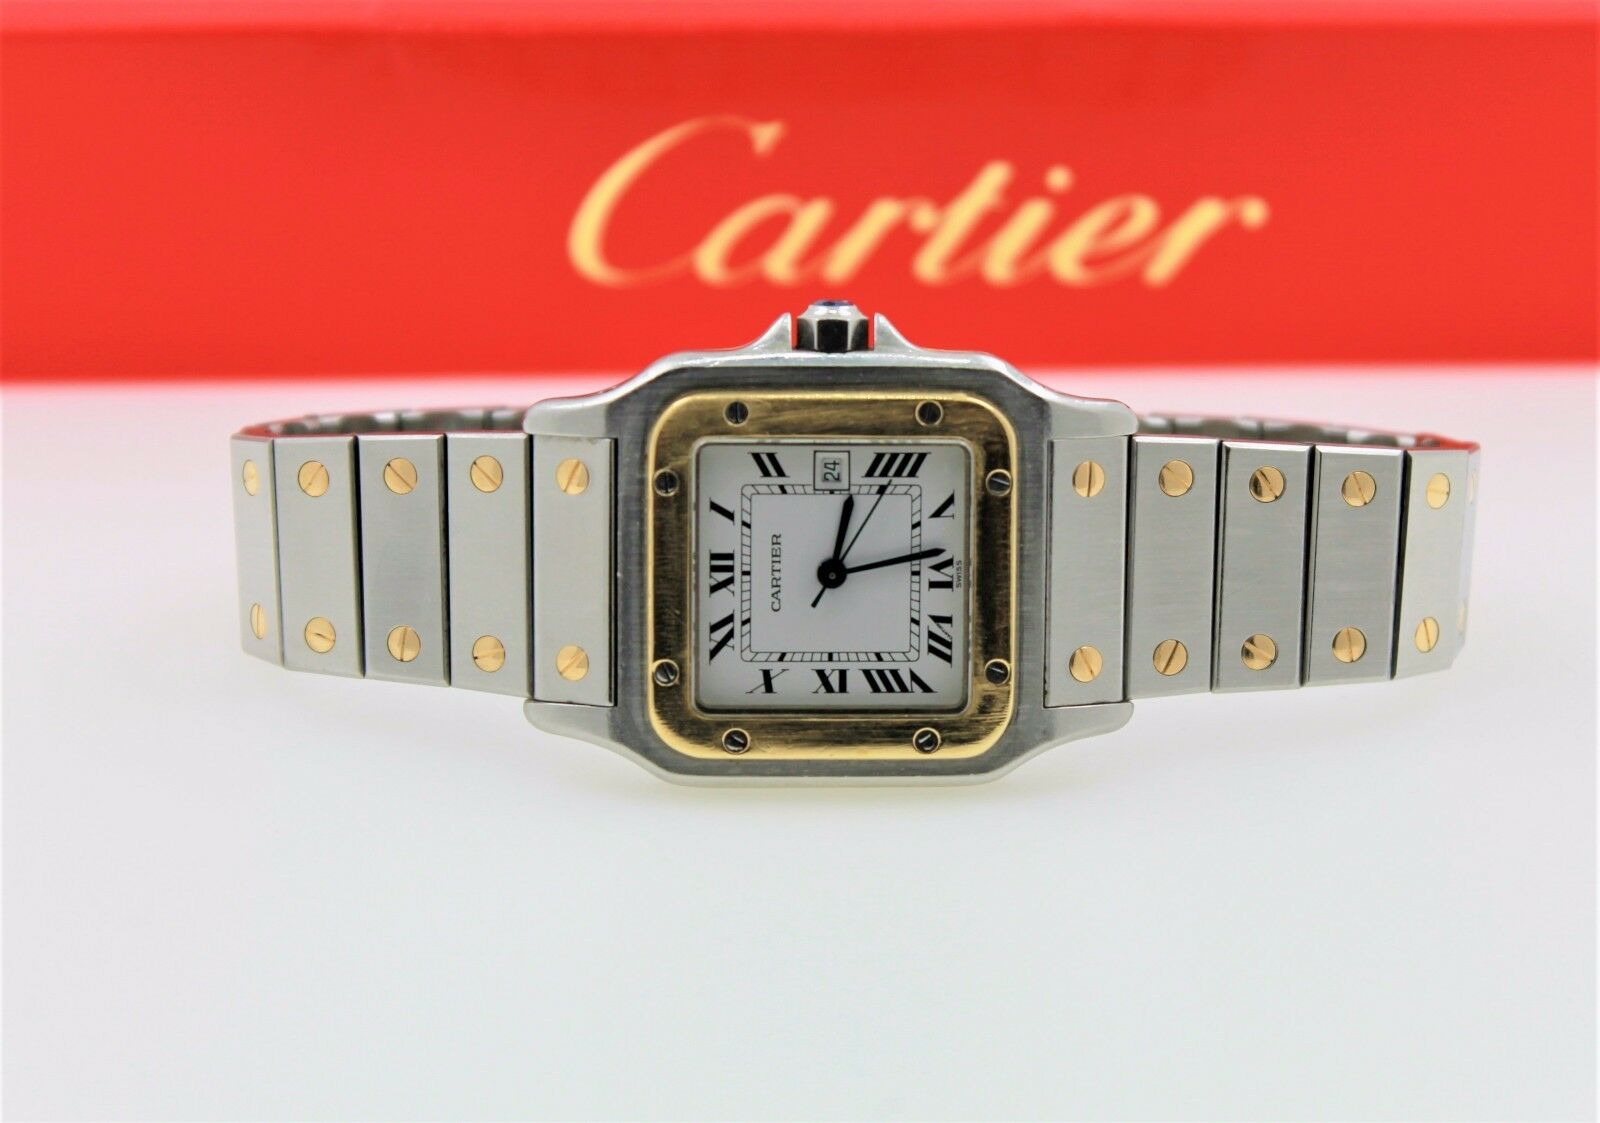 $2199.00 - CARTIER SANTOS GALBEE AUTOMATIC 18K GOLD/SS WHITE DIAL LUXURY SWISS MENS WATCH